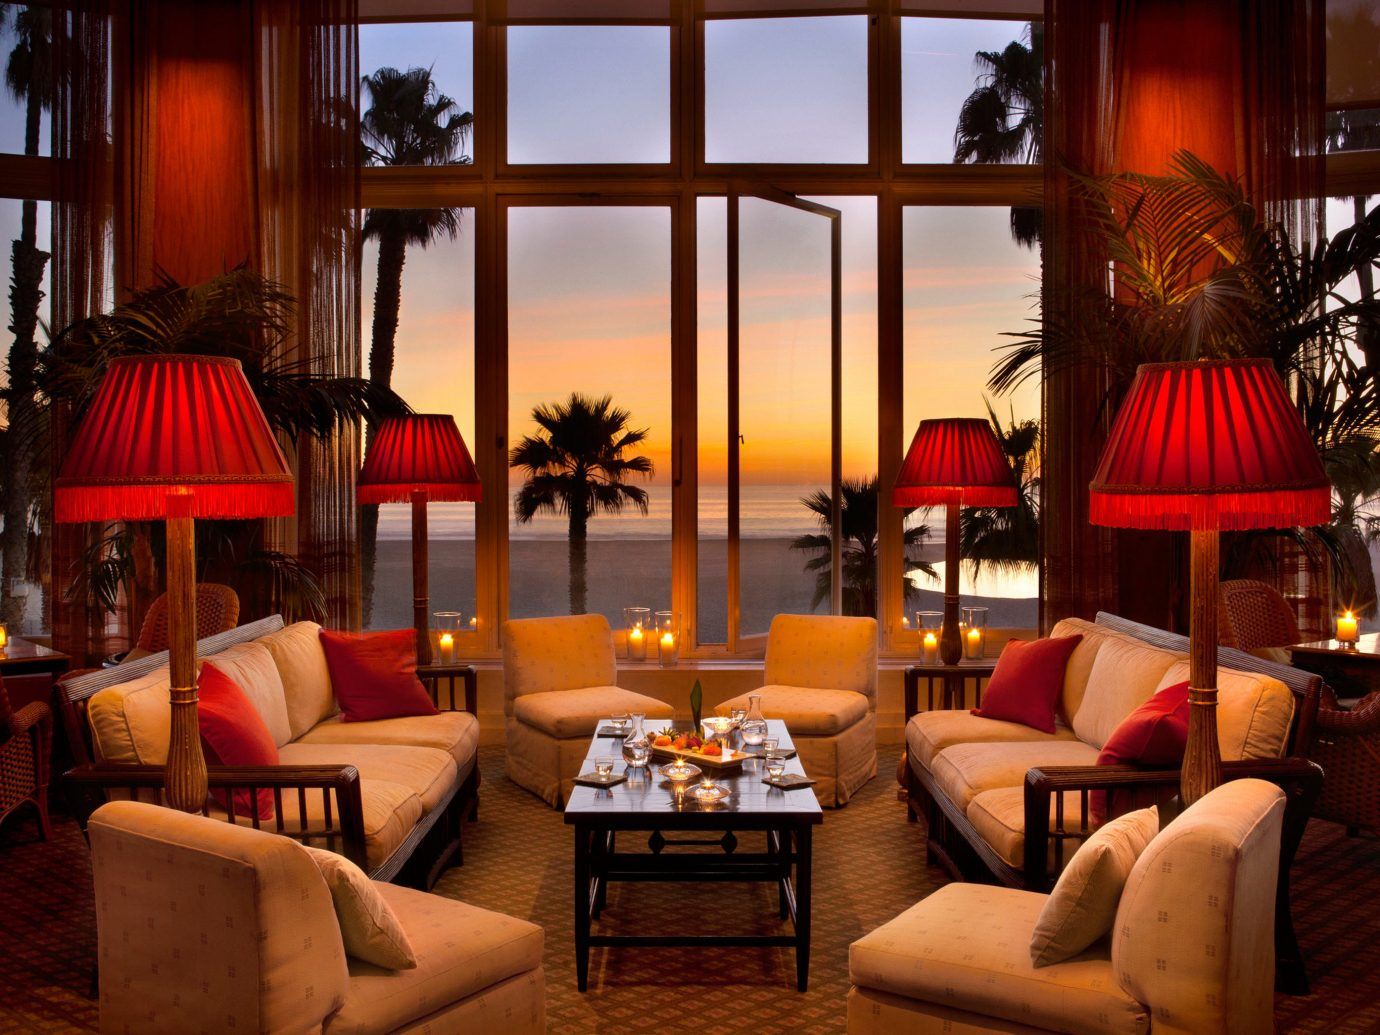 Hotels Living Lounge Luxury Modern Scenic views room indoor floor chair living room red estate Resort restaurant interior design decorated home Design Lobby Suite furniture area colorful several